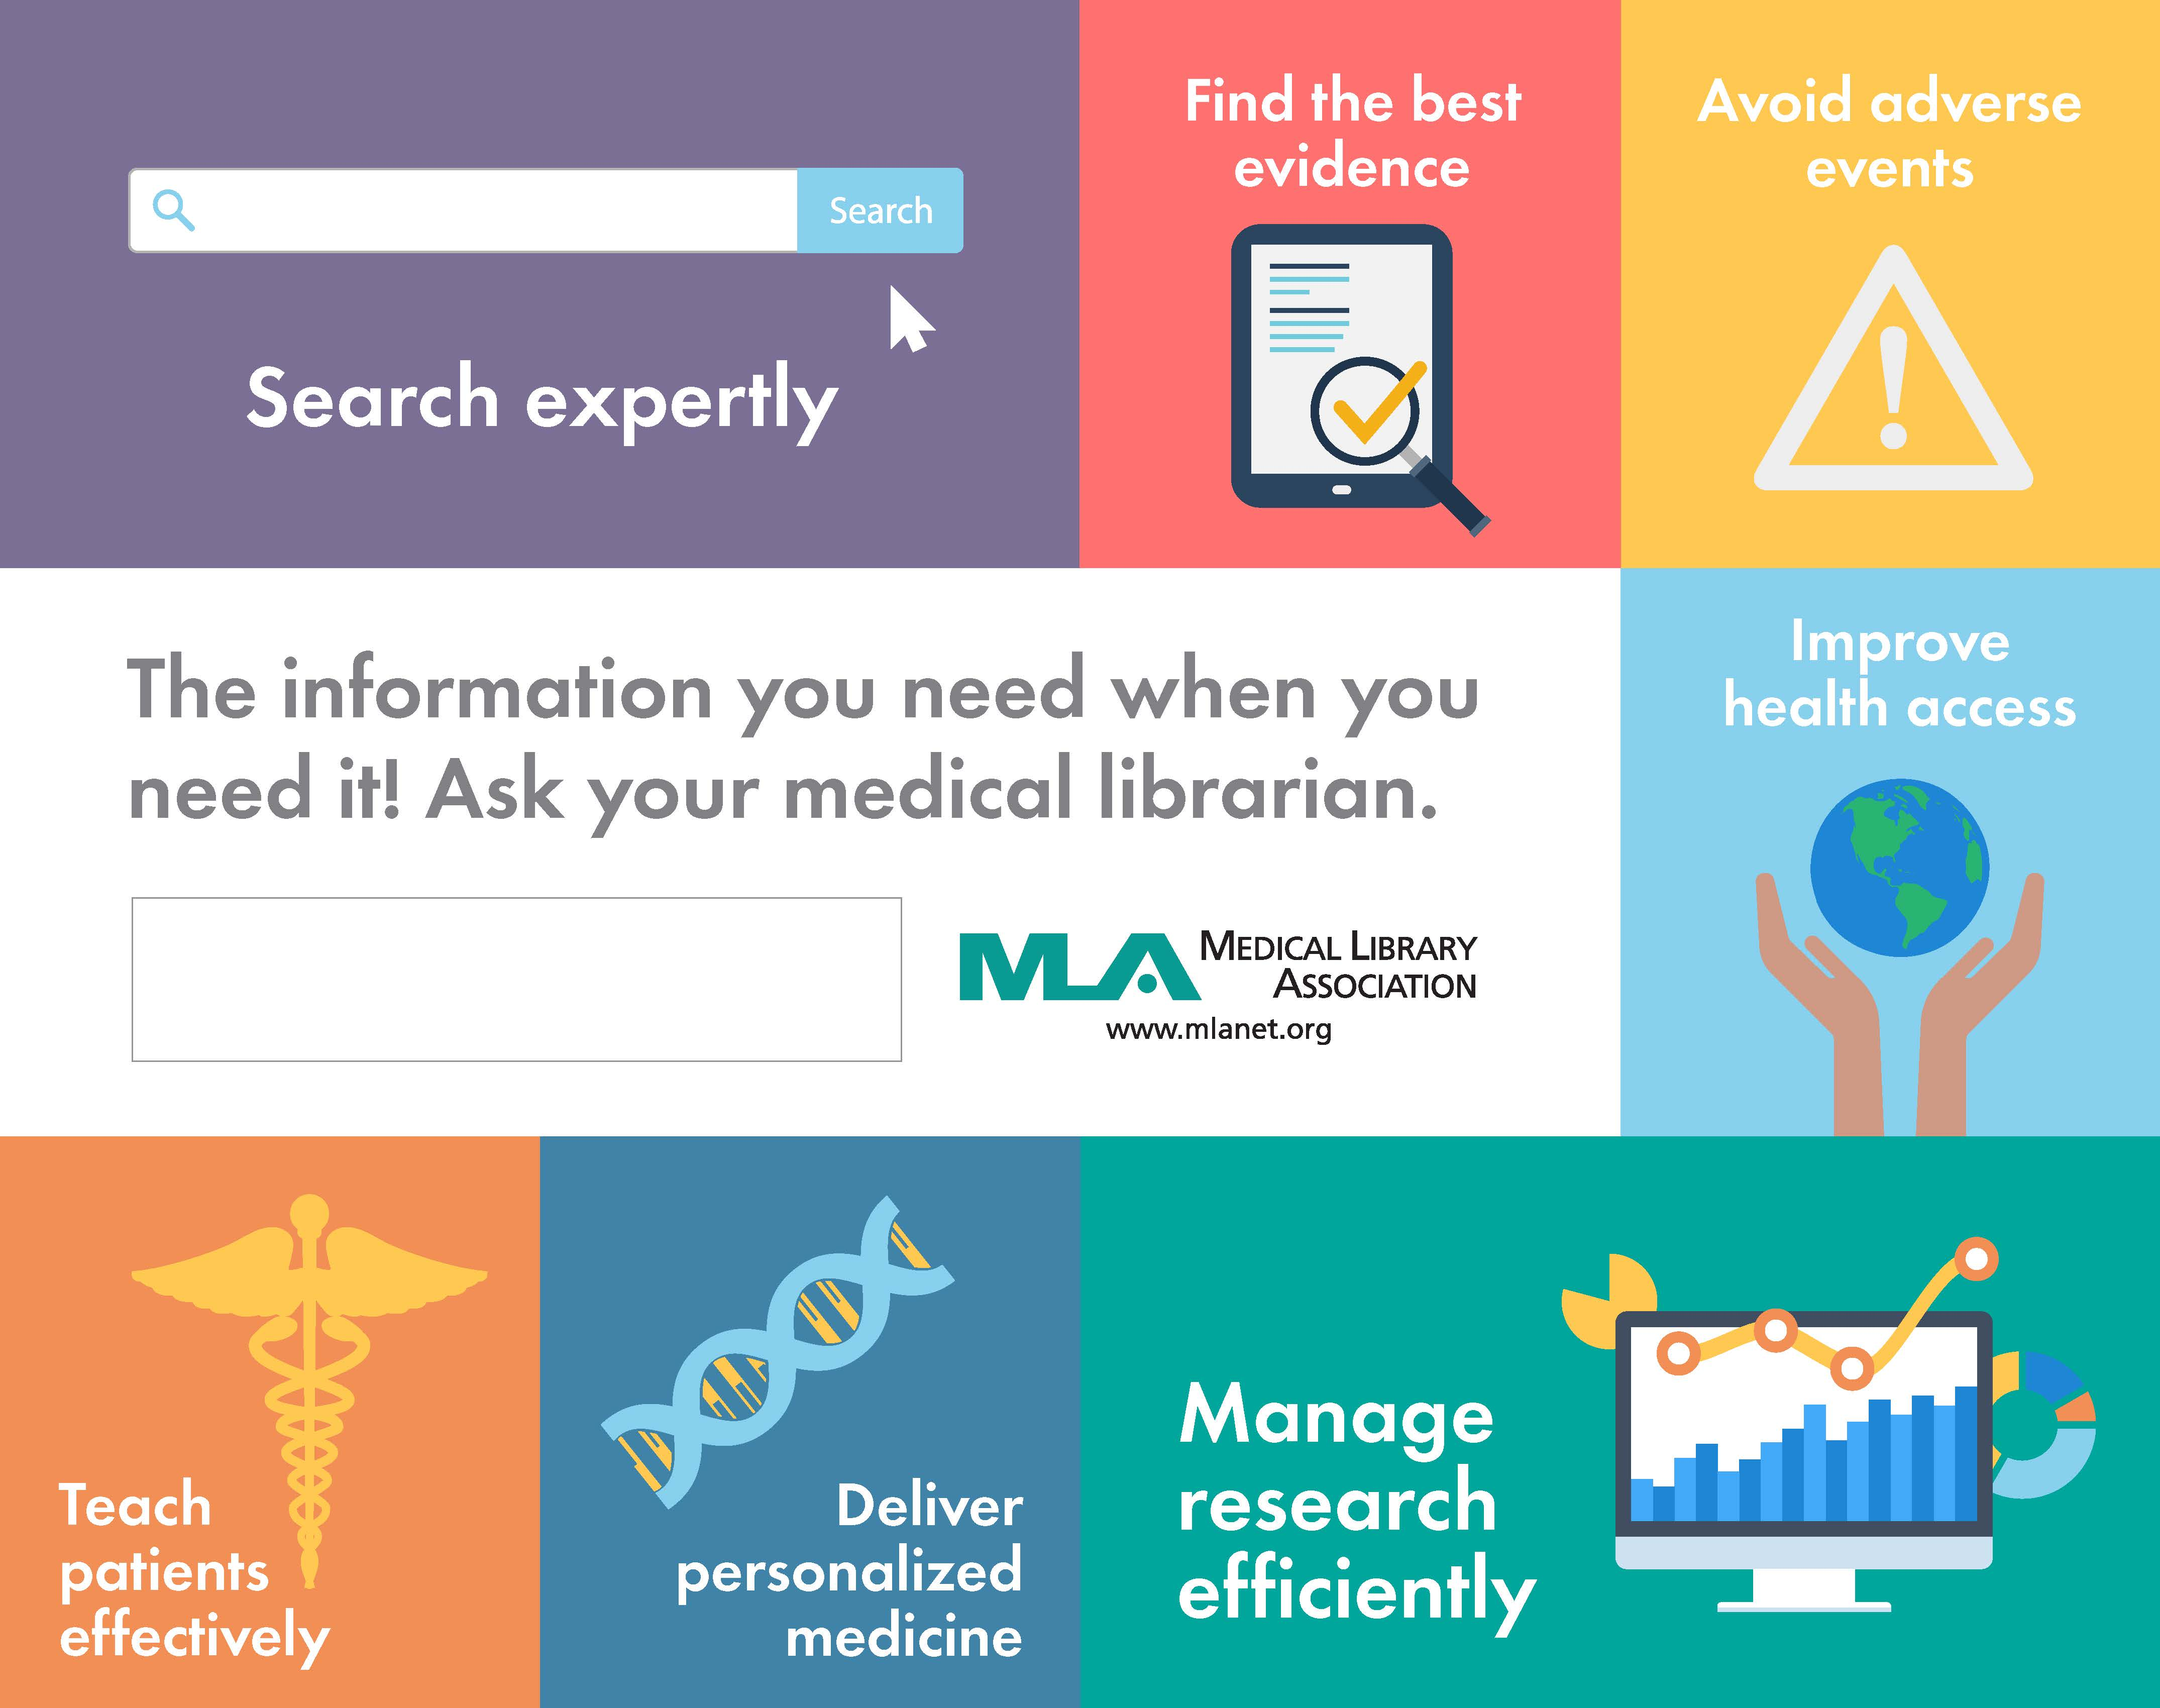 October is National Medical Librarians Month